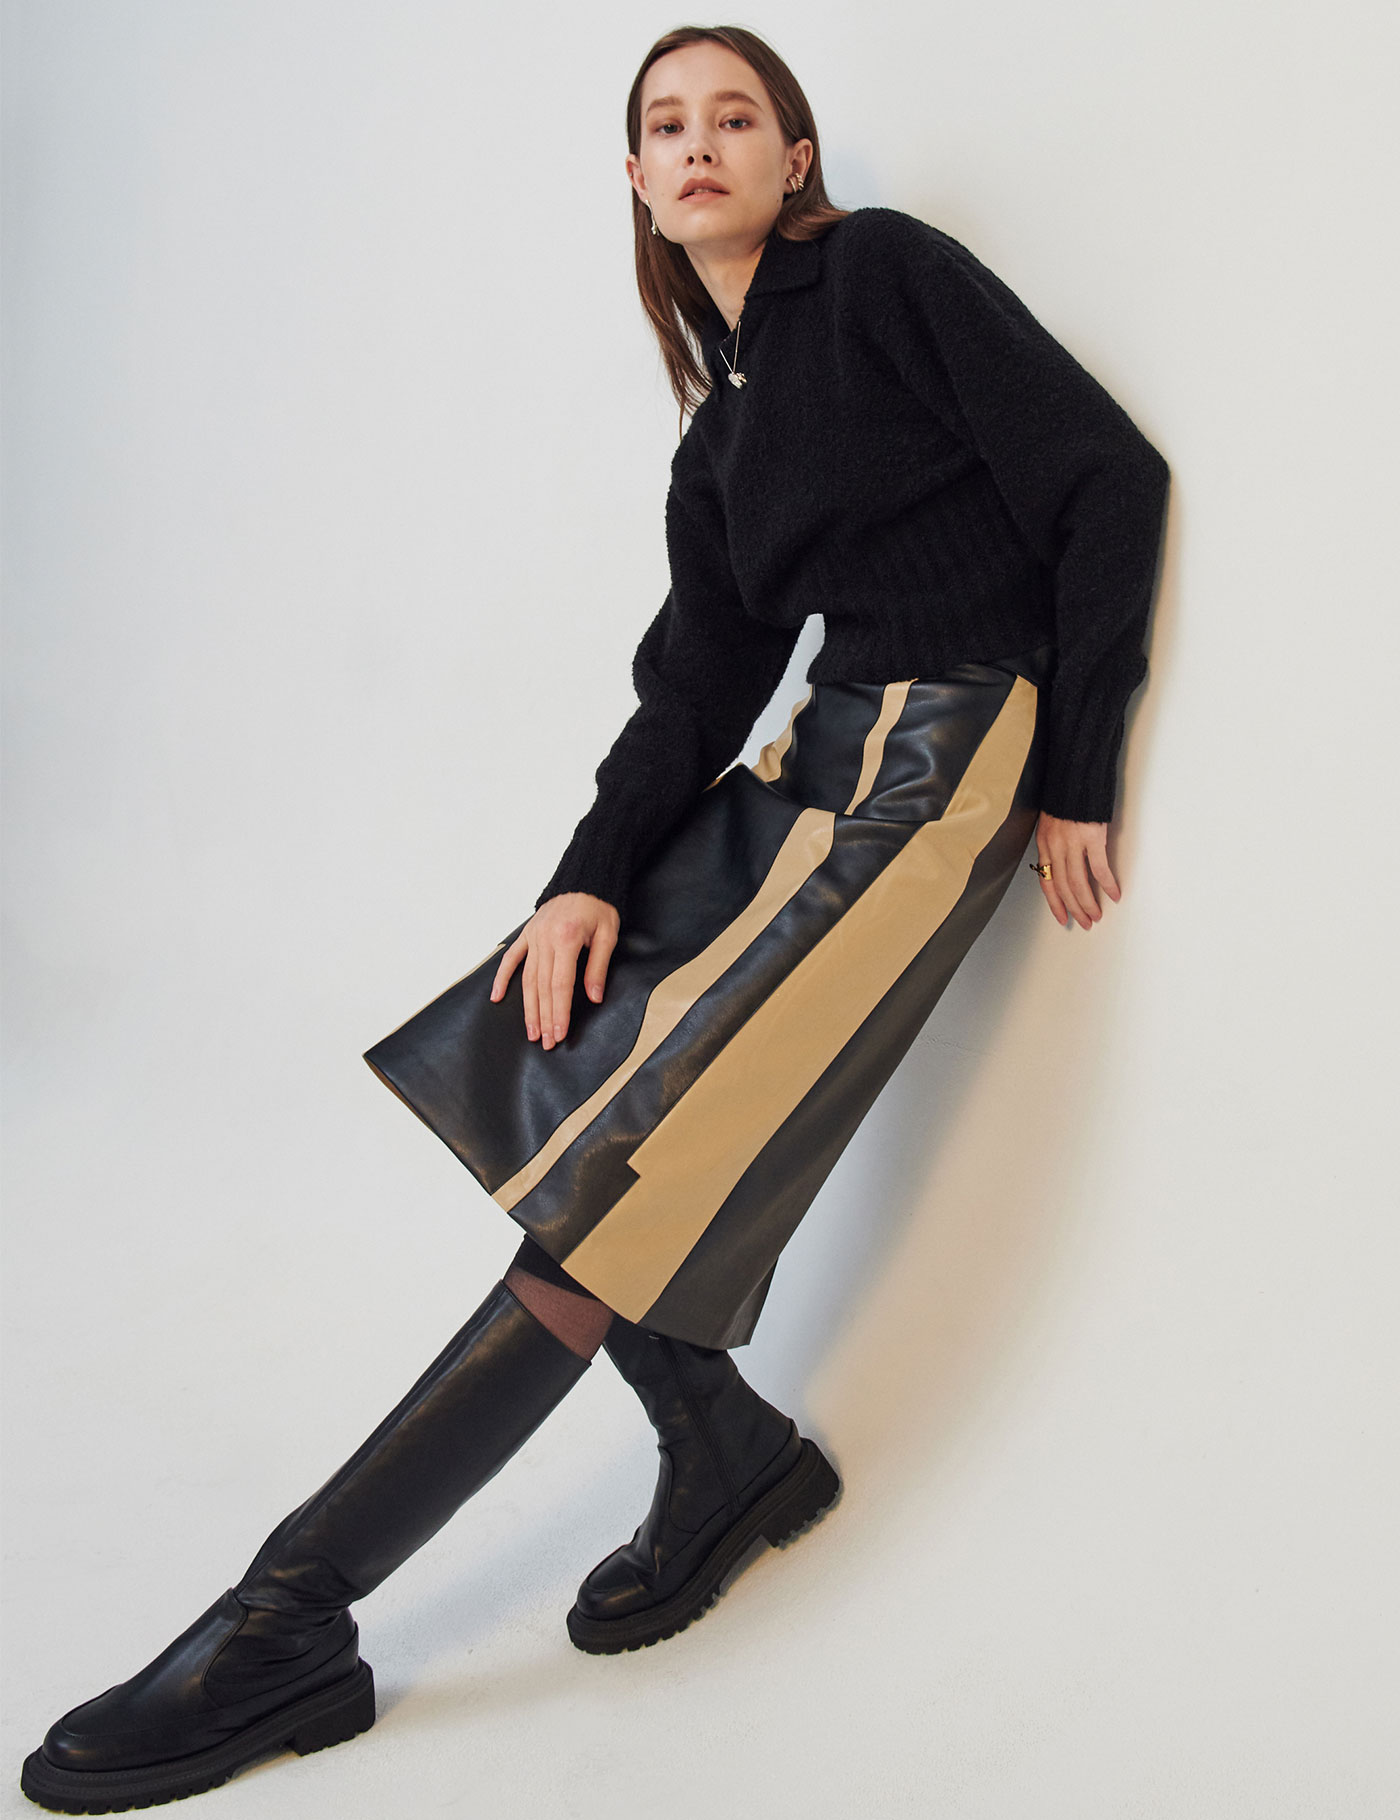 COLOR-BLOCK FAUX LEATHER SKIRT [12월 8일 예약배송]